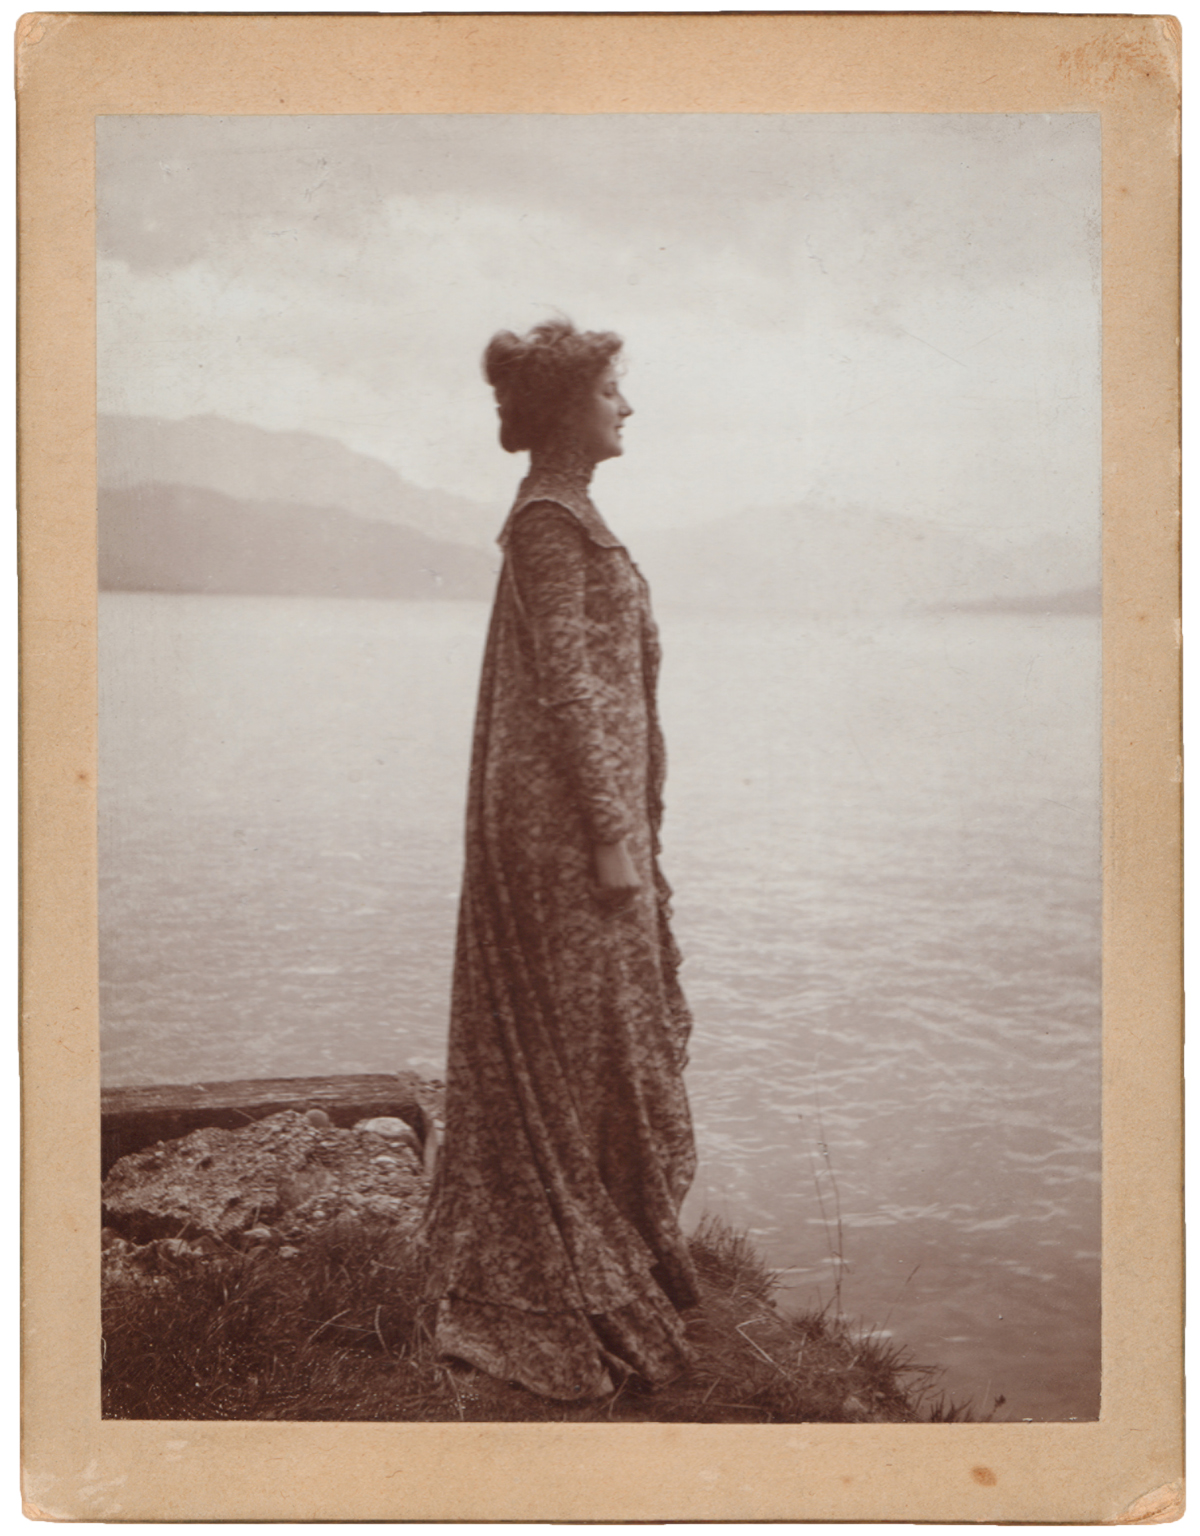 Emilie Flöge wears one of her reform dresses as she stands on the shores of Lake Atter